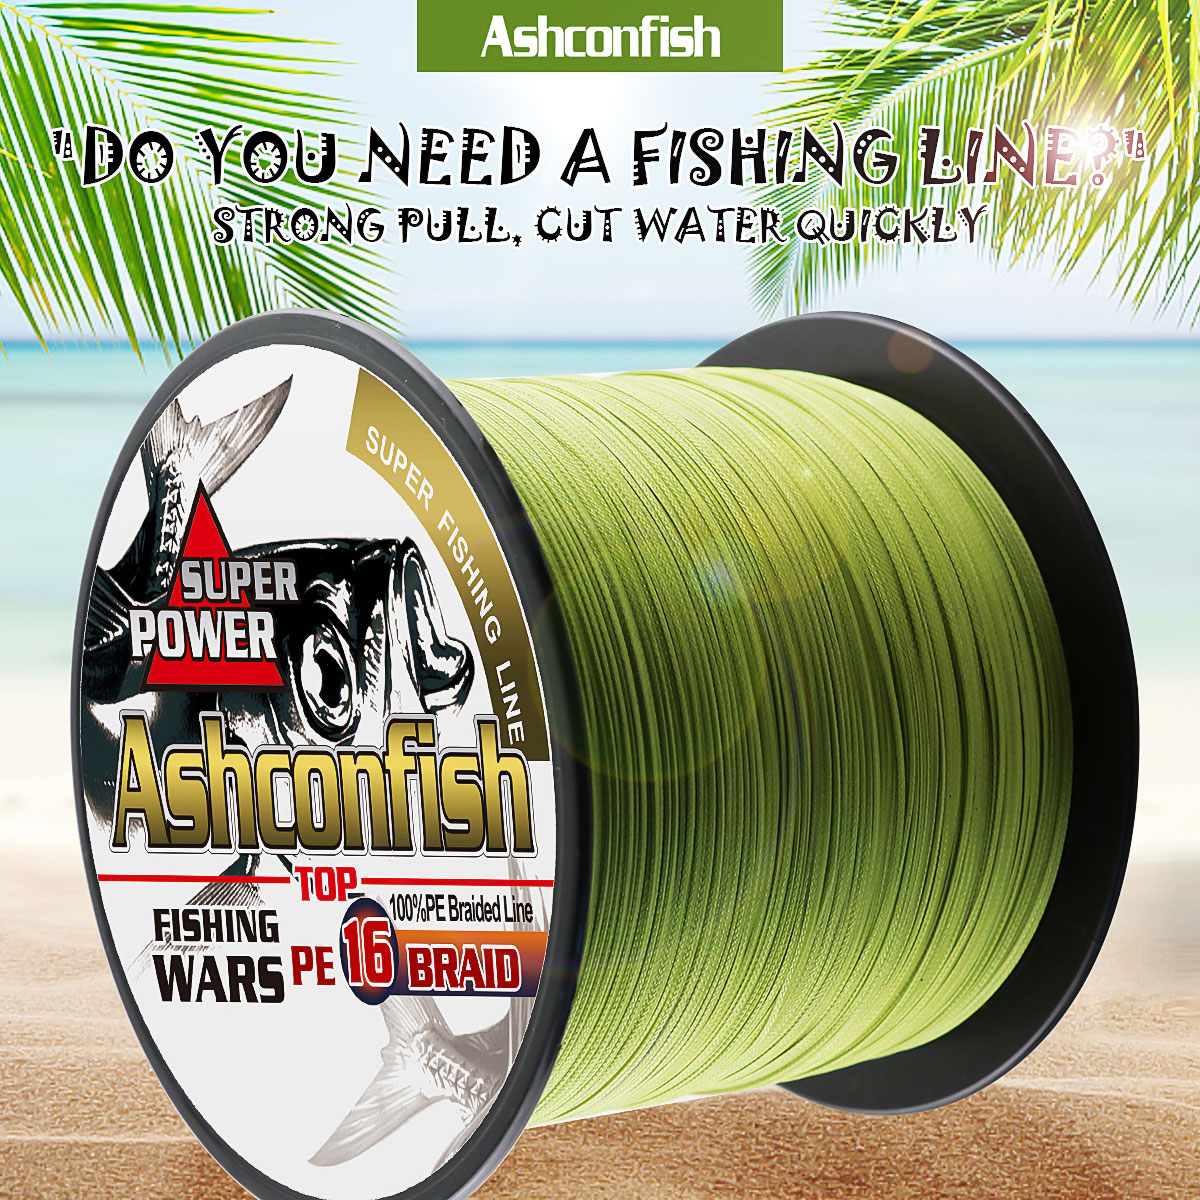 Super hollowcore braided fishing line 1500M 16 Strands pe super Ocean Fishing braided wires 20 500LBS leader line 0.16 2.0mm - 2